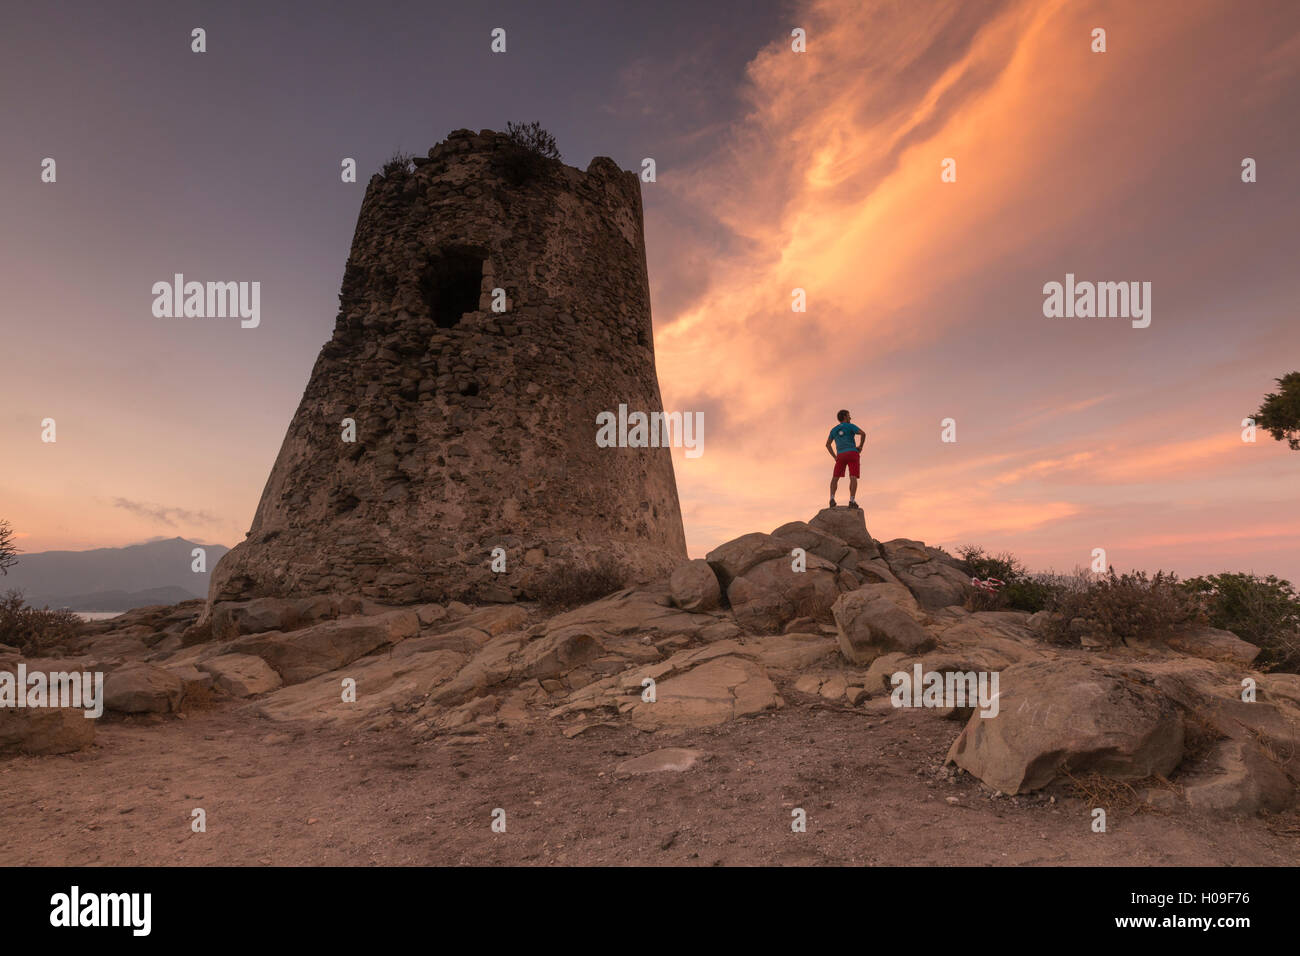 Hiker admires sunset from the stone tower overlooking the bay, Porto Giunco, Villasimius, Cagliari, Sardinia, Italy - Stock Image